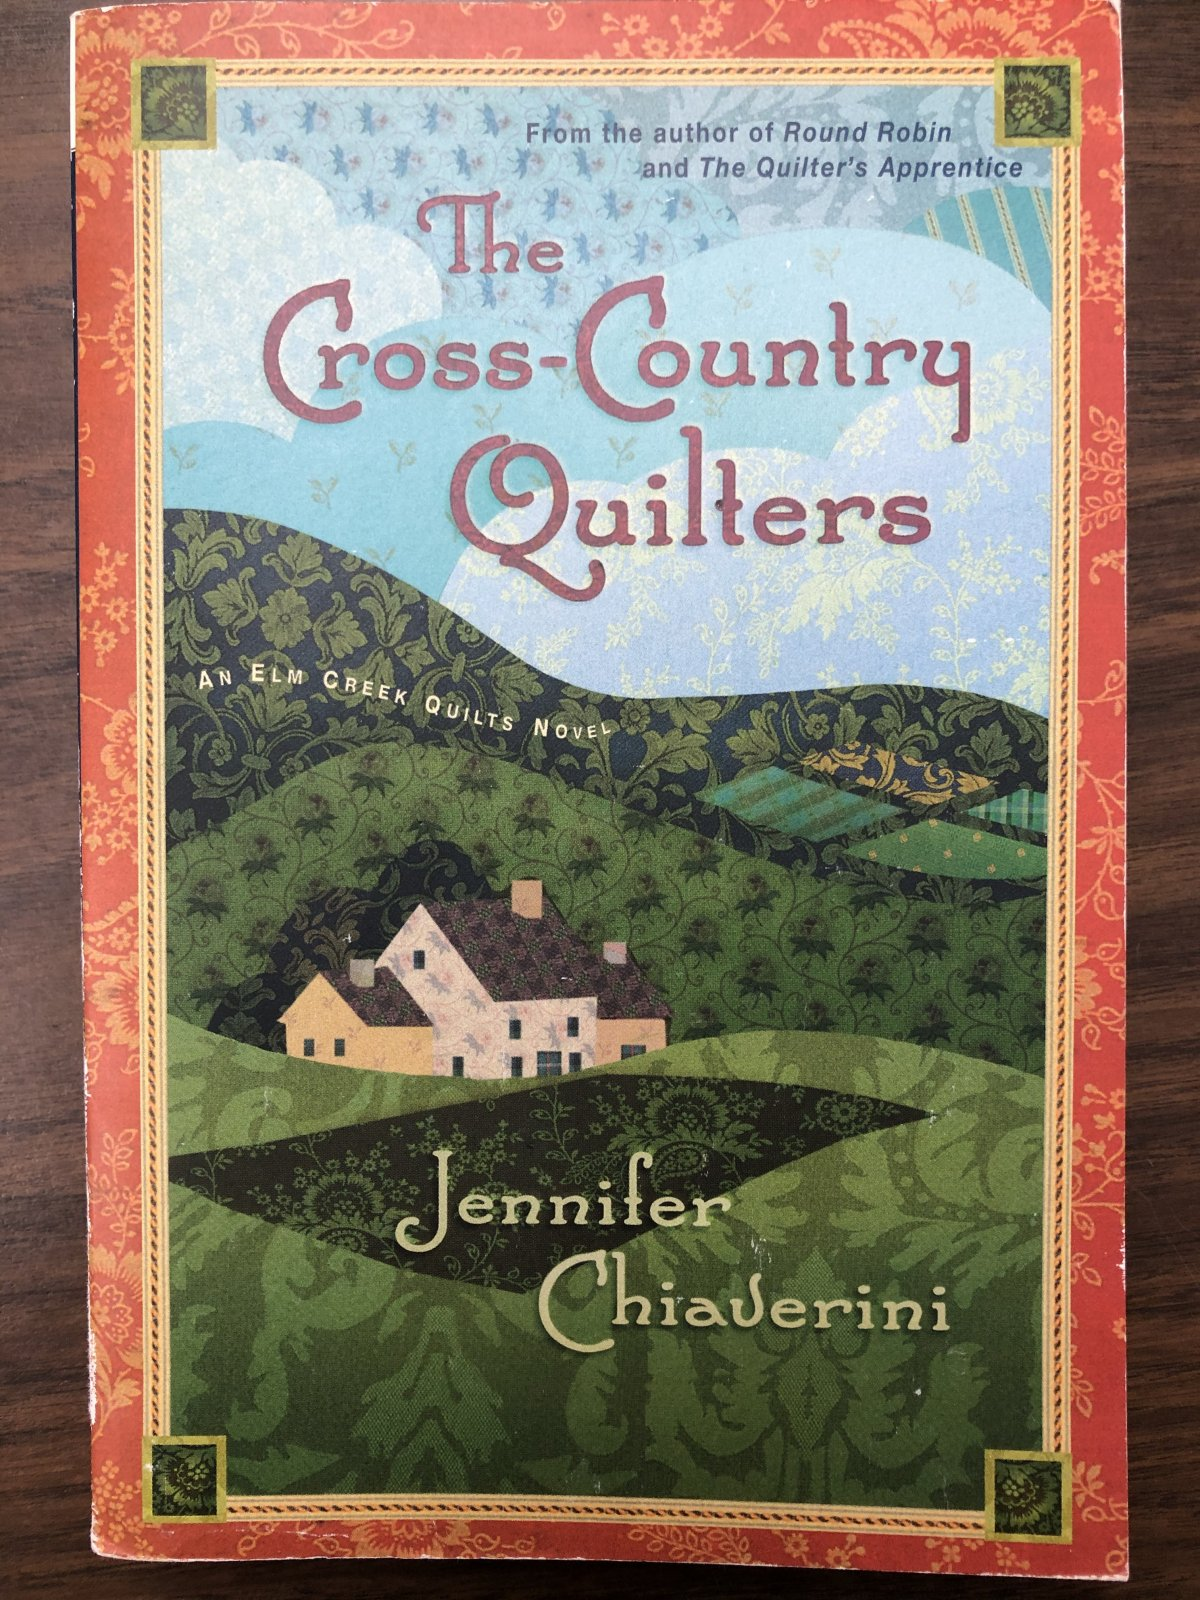 Cross Country Quilters, The